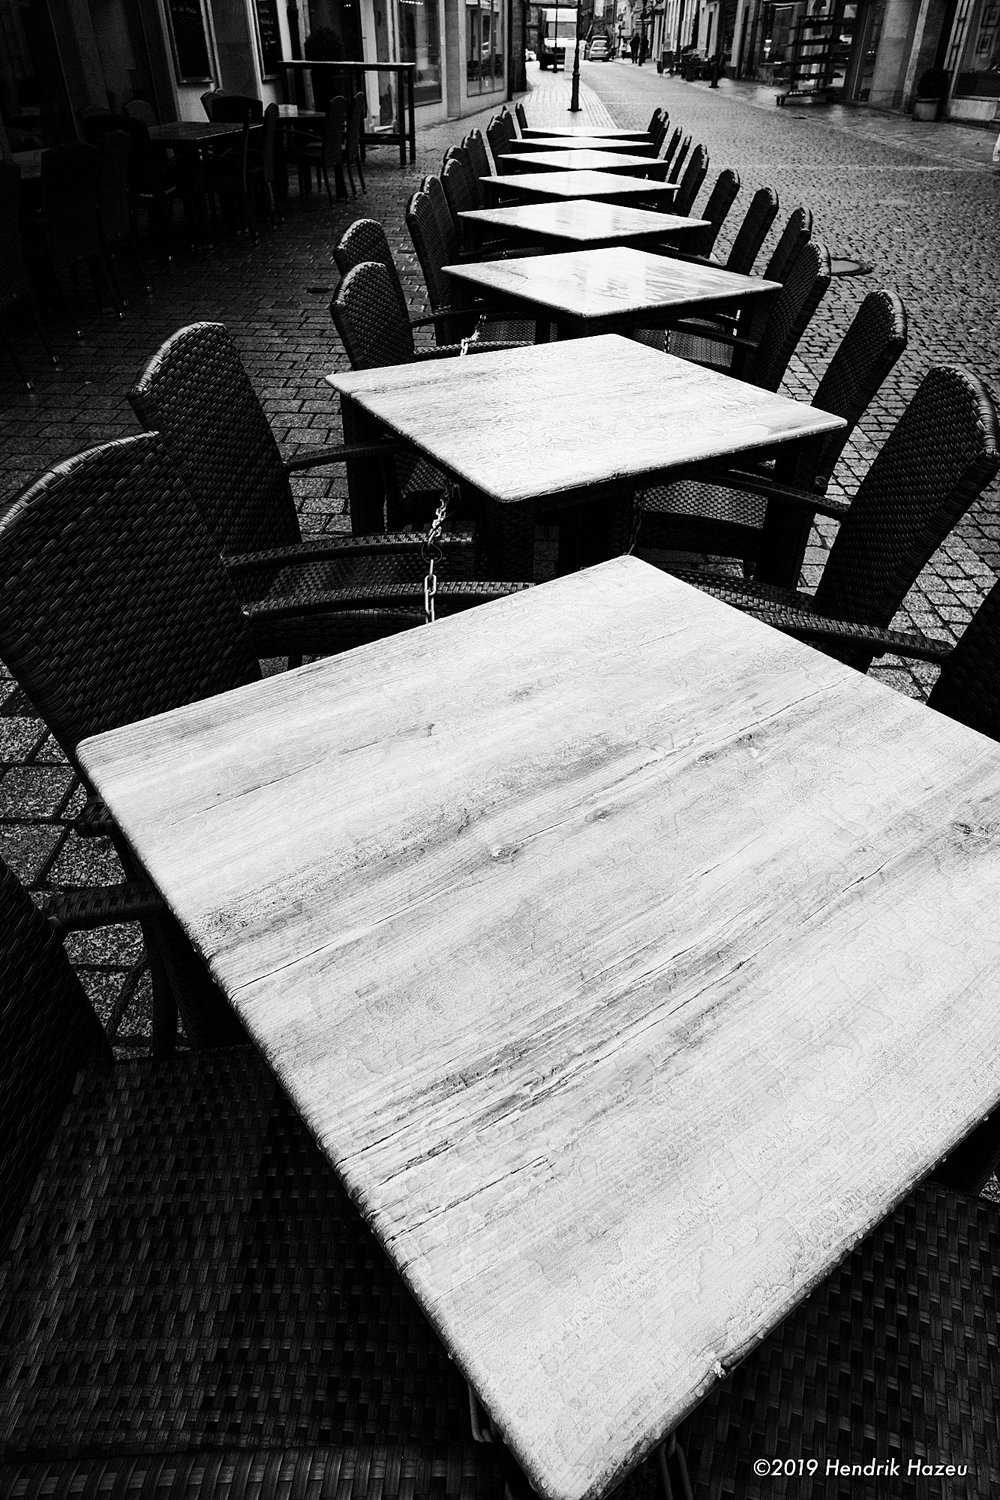 Tables for diamonds, Fuji X-H1 with XF 14mm f/2.8 @f/8, 1/60 sec, ISO 400 using ACROS-R JPEG